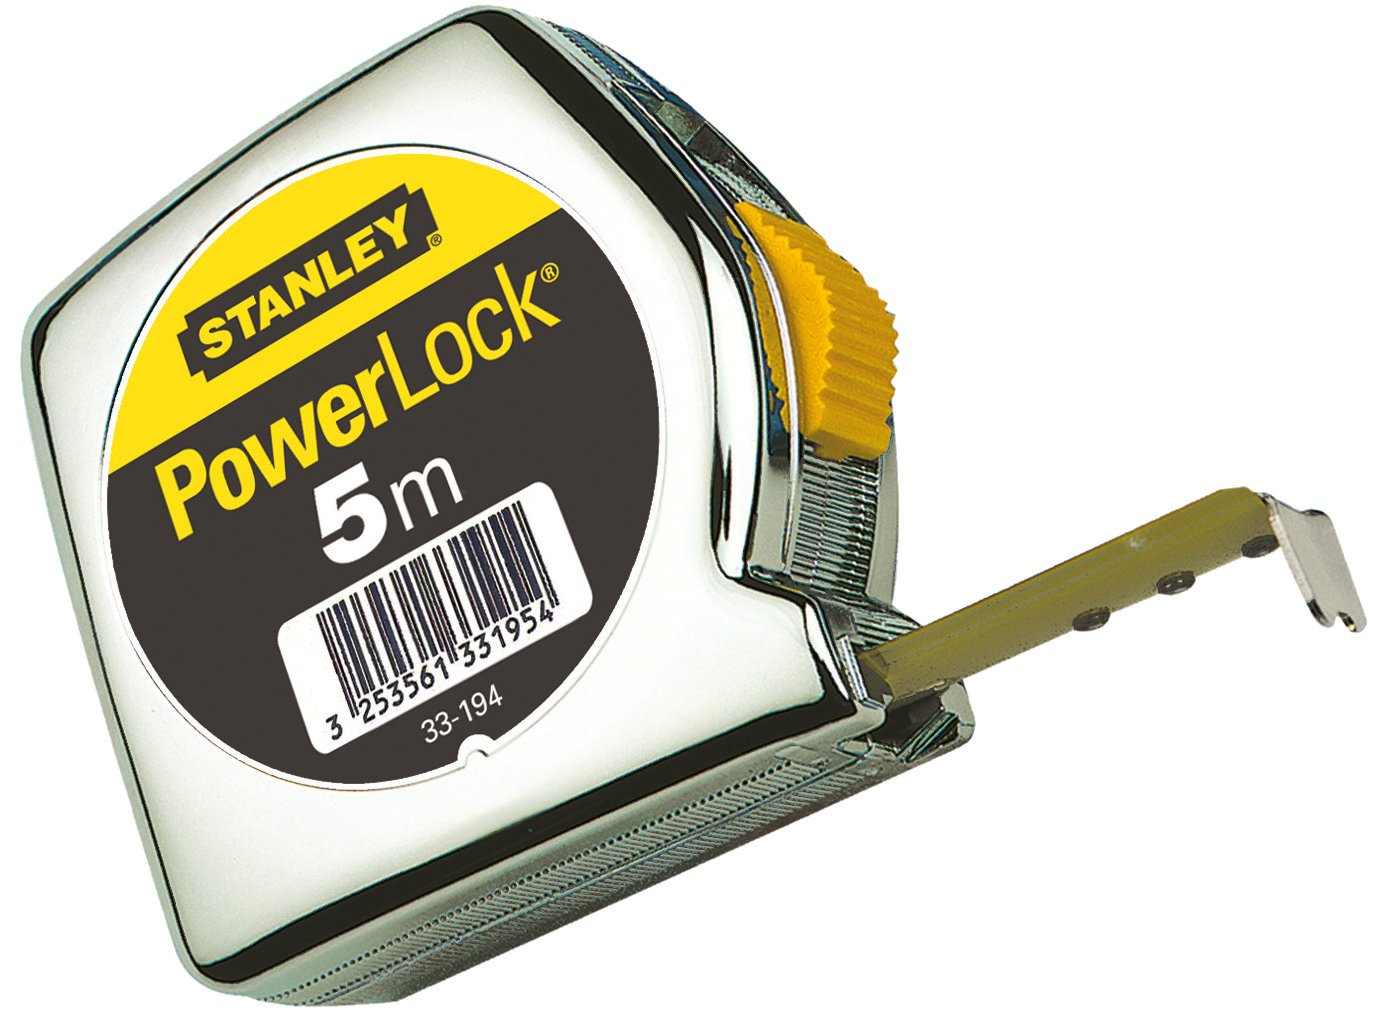 Stanley 1-33-195 Mesure 5 m x 25 mm en ABS Powerlock Classic